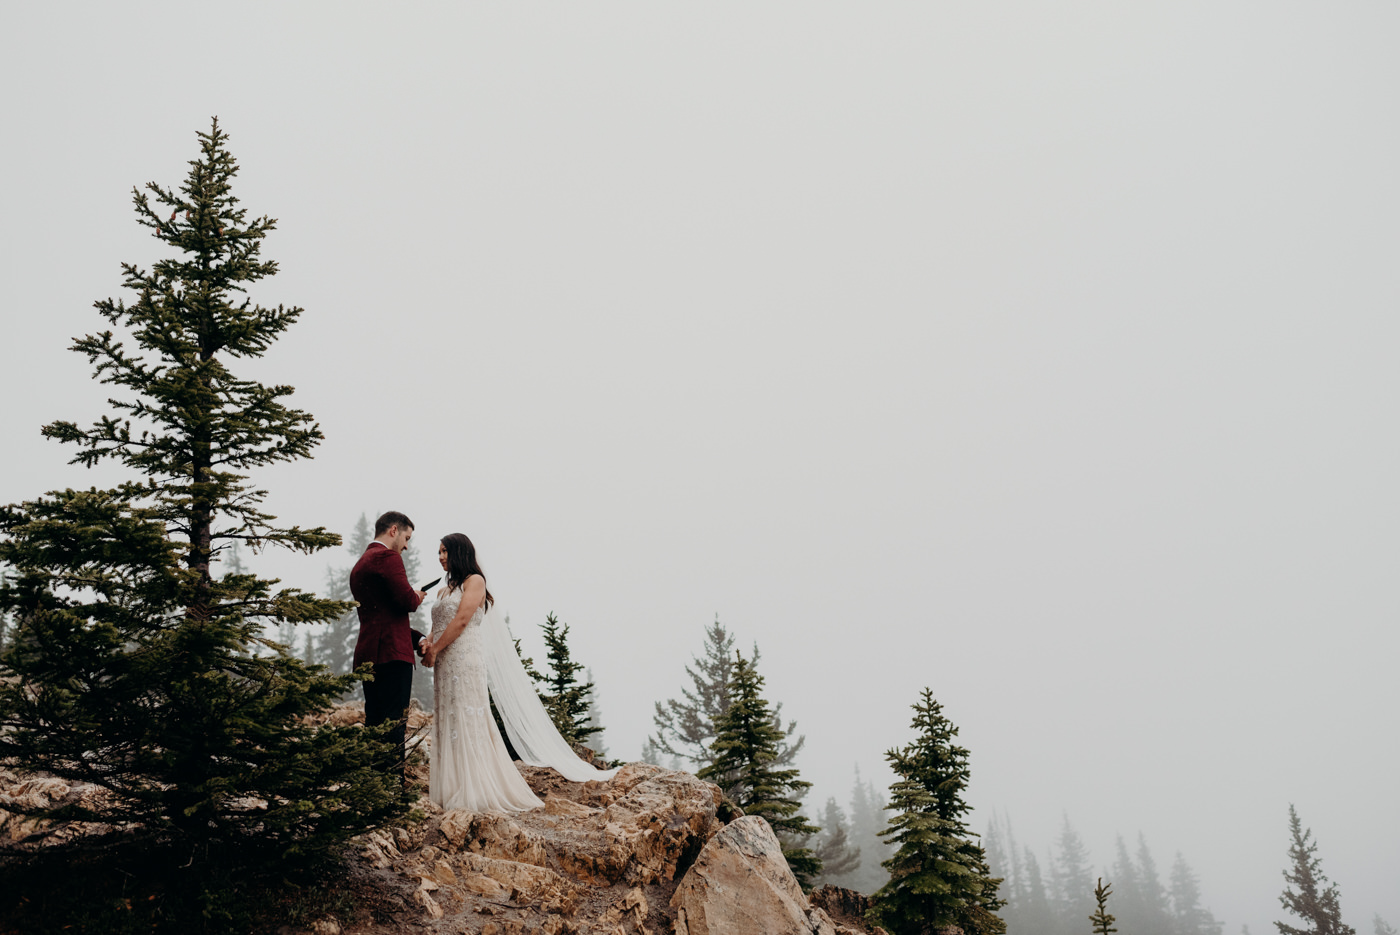 exchanging vows at Banff National Park Elopement